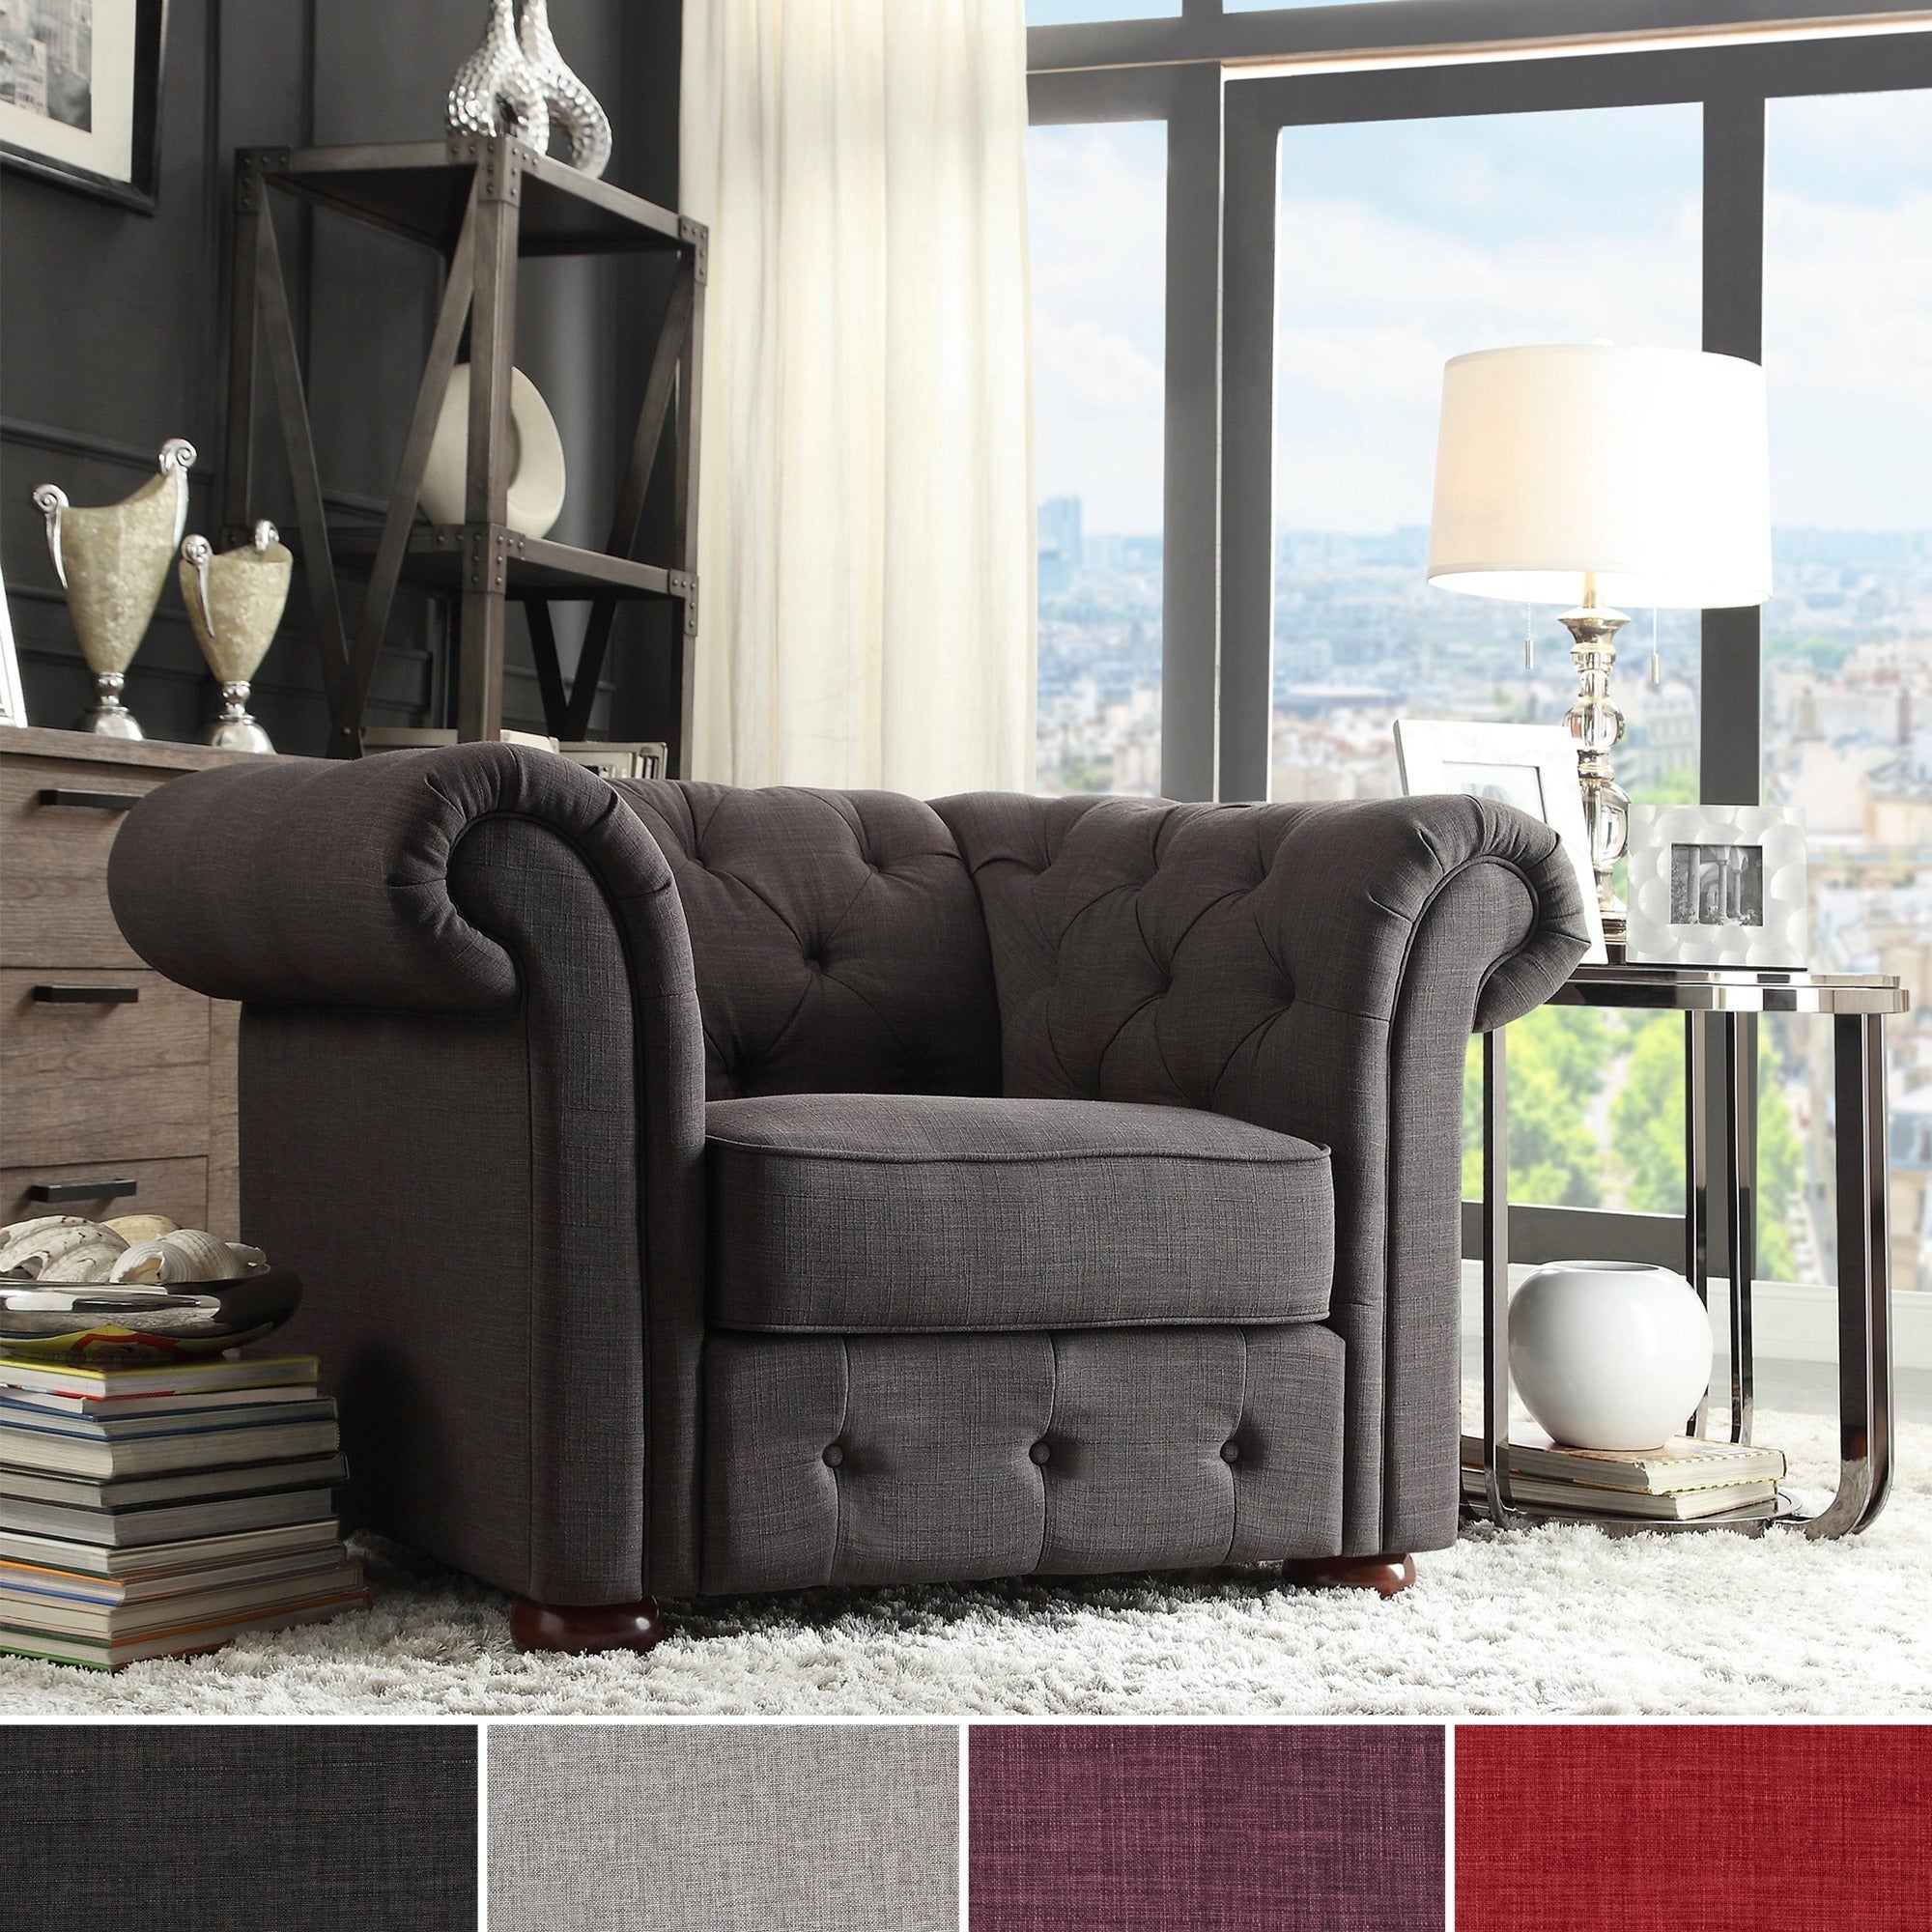 Knightsbridge Linen Tufted Scroll Arm Chesterfield Chair by iNSPIRE Q  Artisan - Free Shipping Today - Overstock.com - 16408514